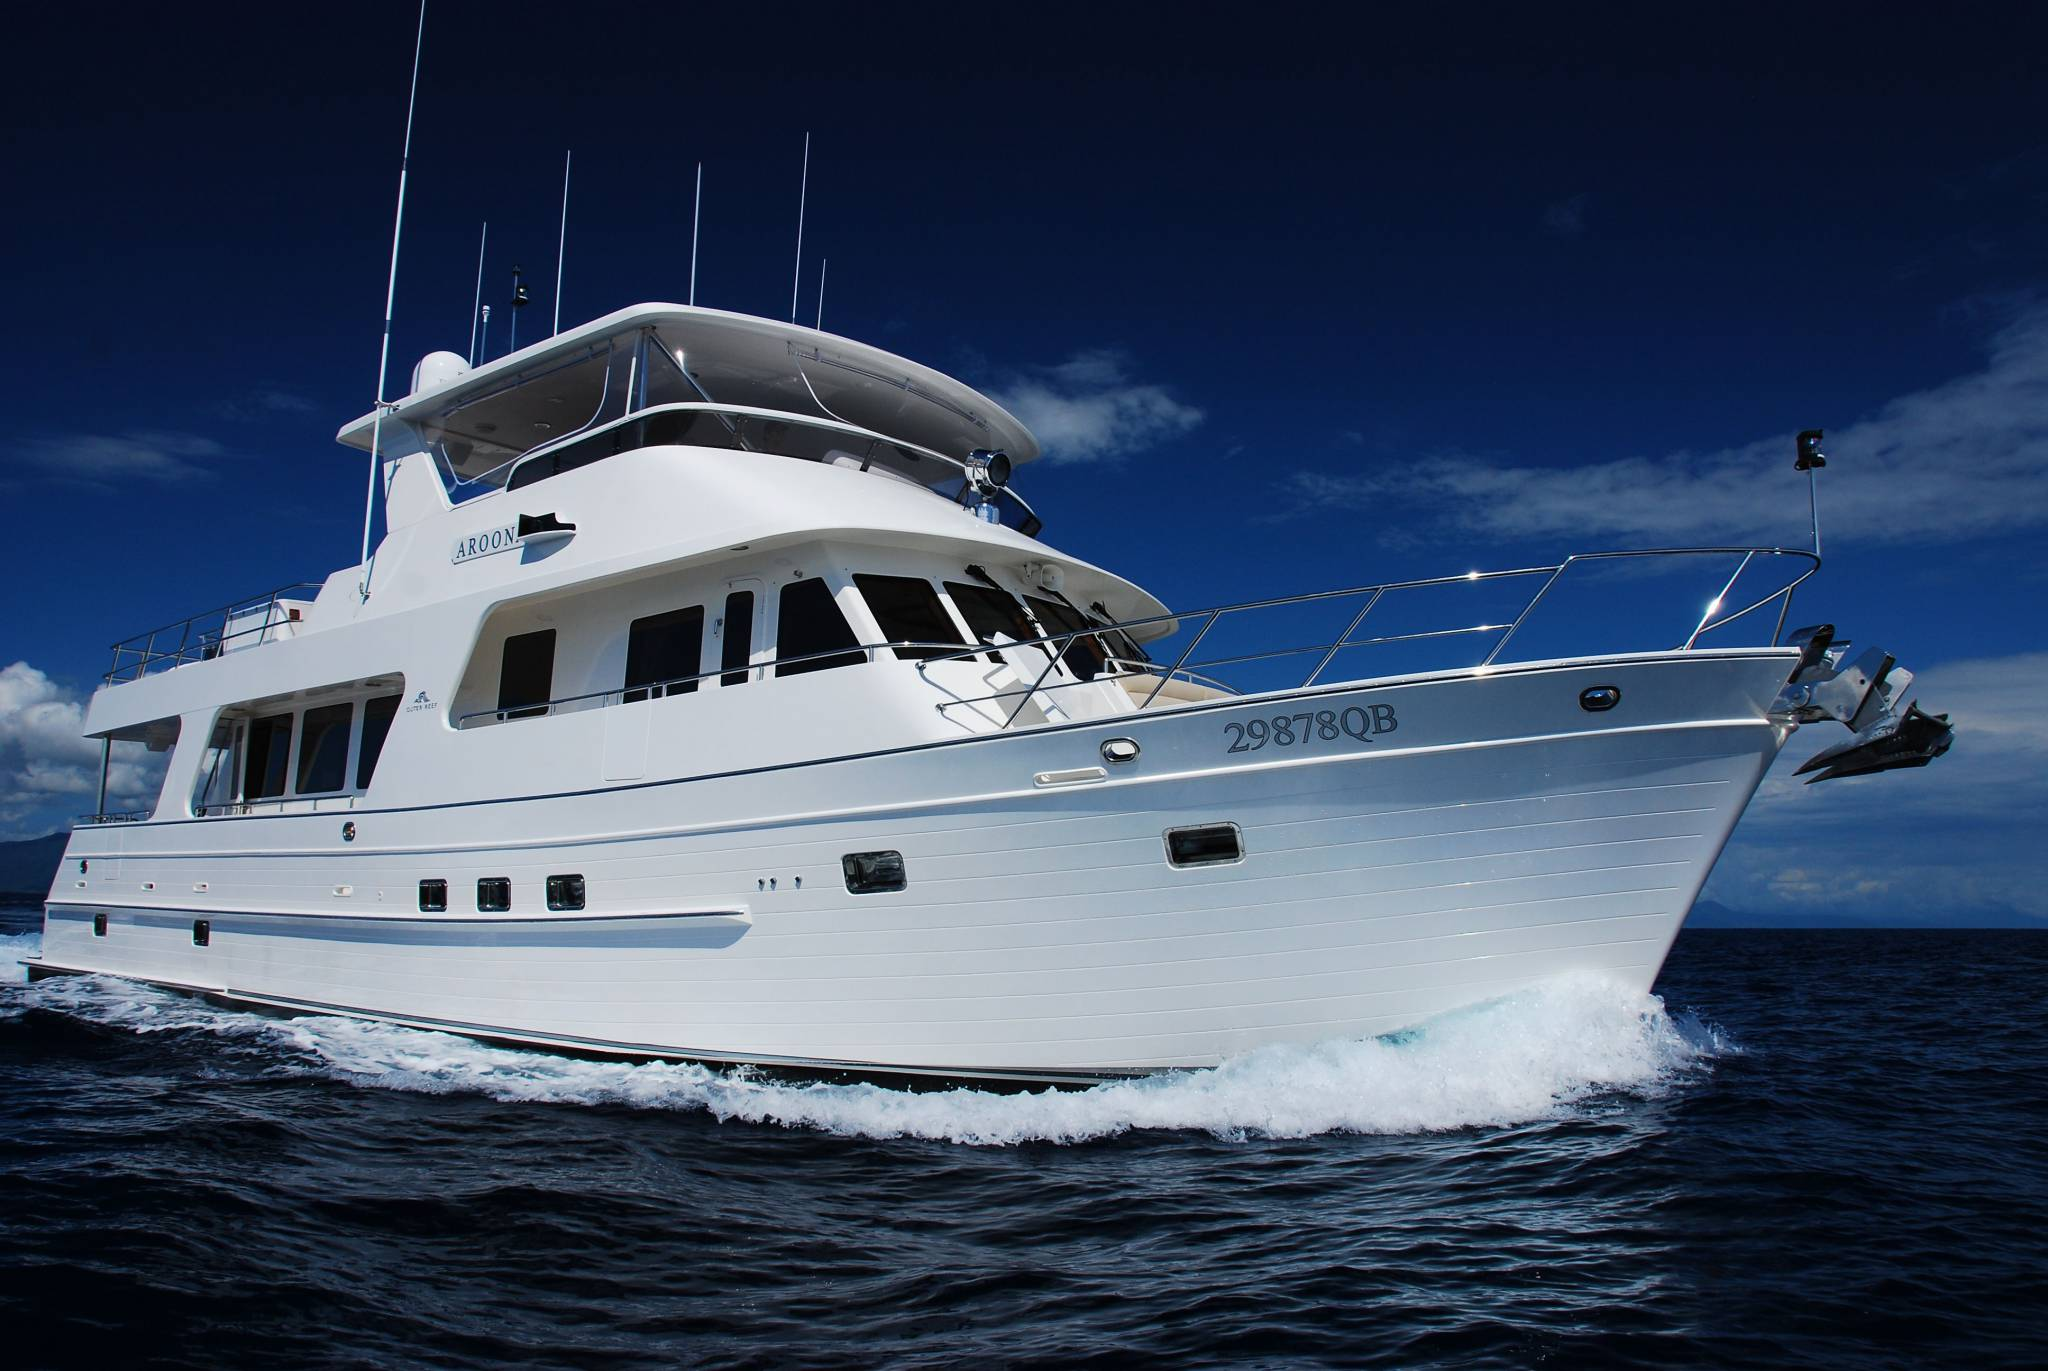 Aroona Boat Private Yacht Charter Cairns